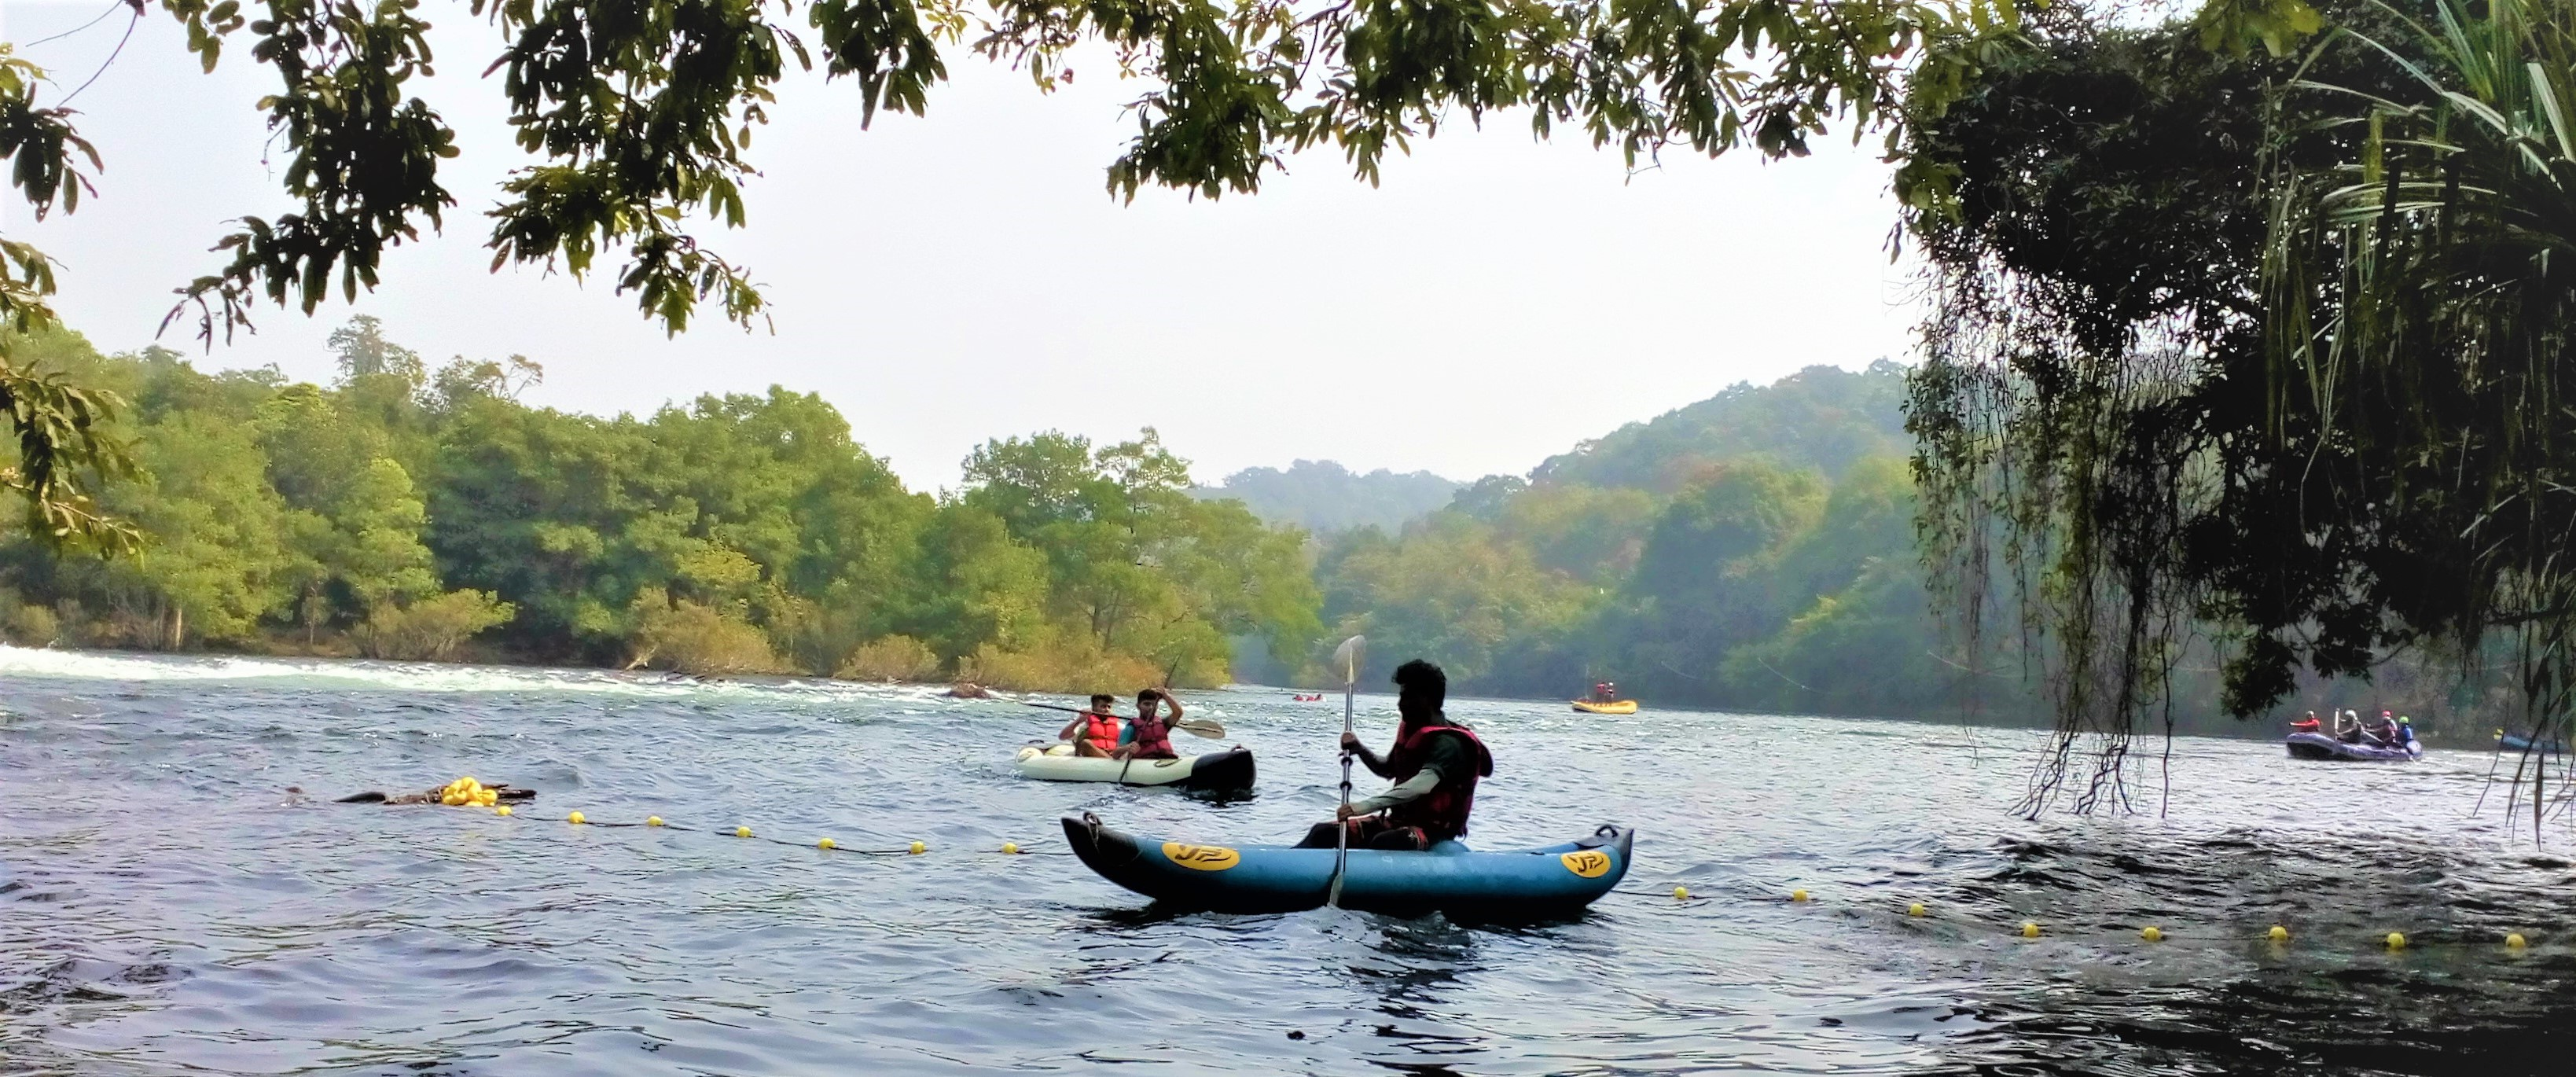 DANDELI CAMPING & WATER SPORTS – NEW YEAR SPECIAL